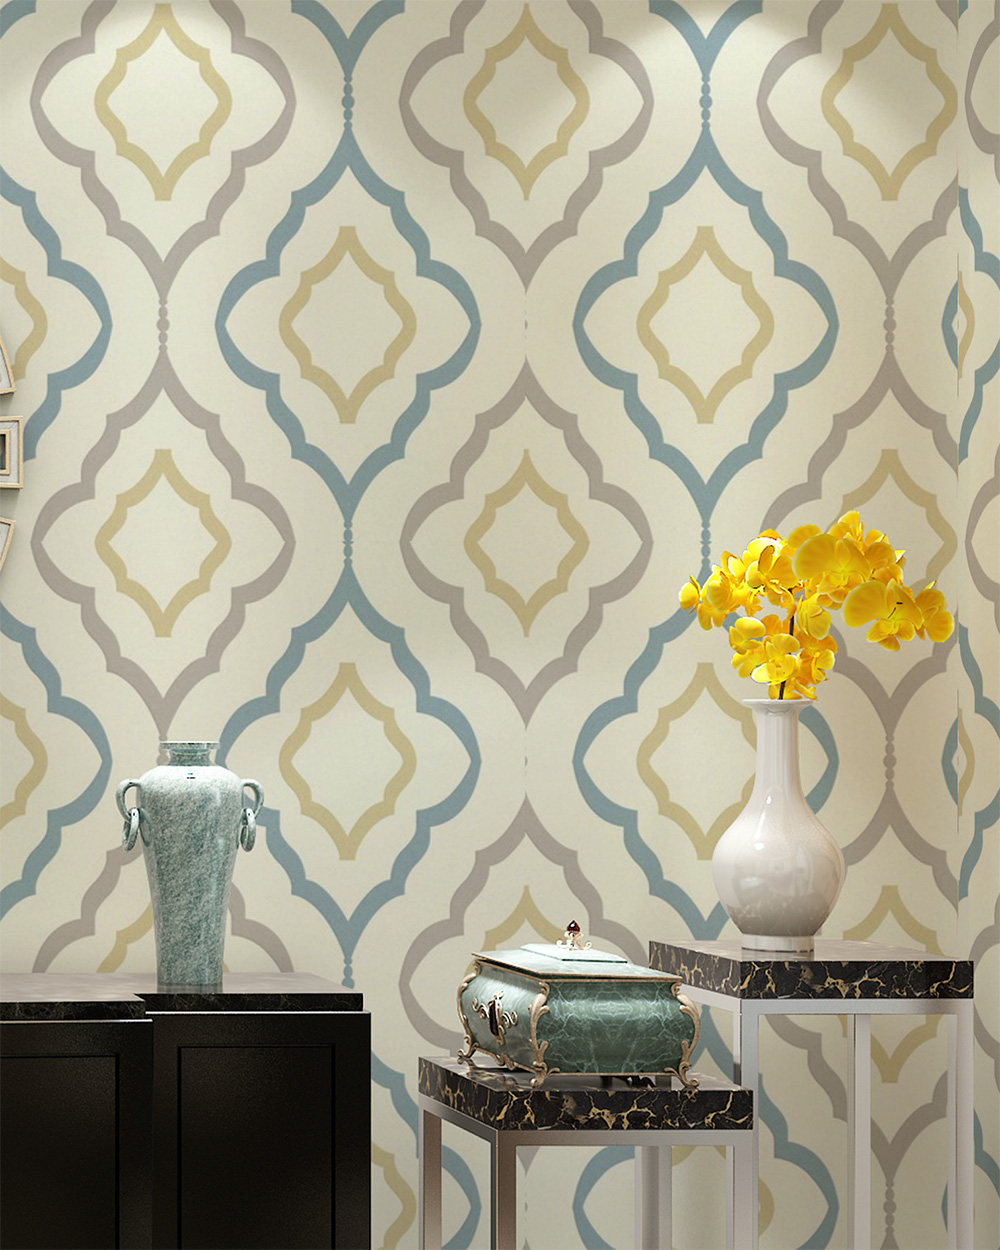 Haokhome vintage wallpaper geometric trippy wallpaper for Grey and cream wallpaper